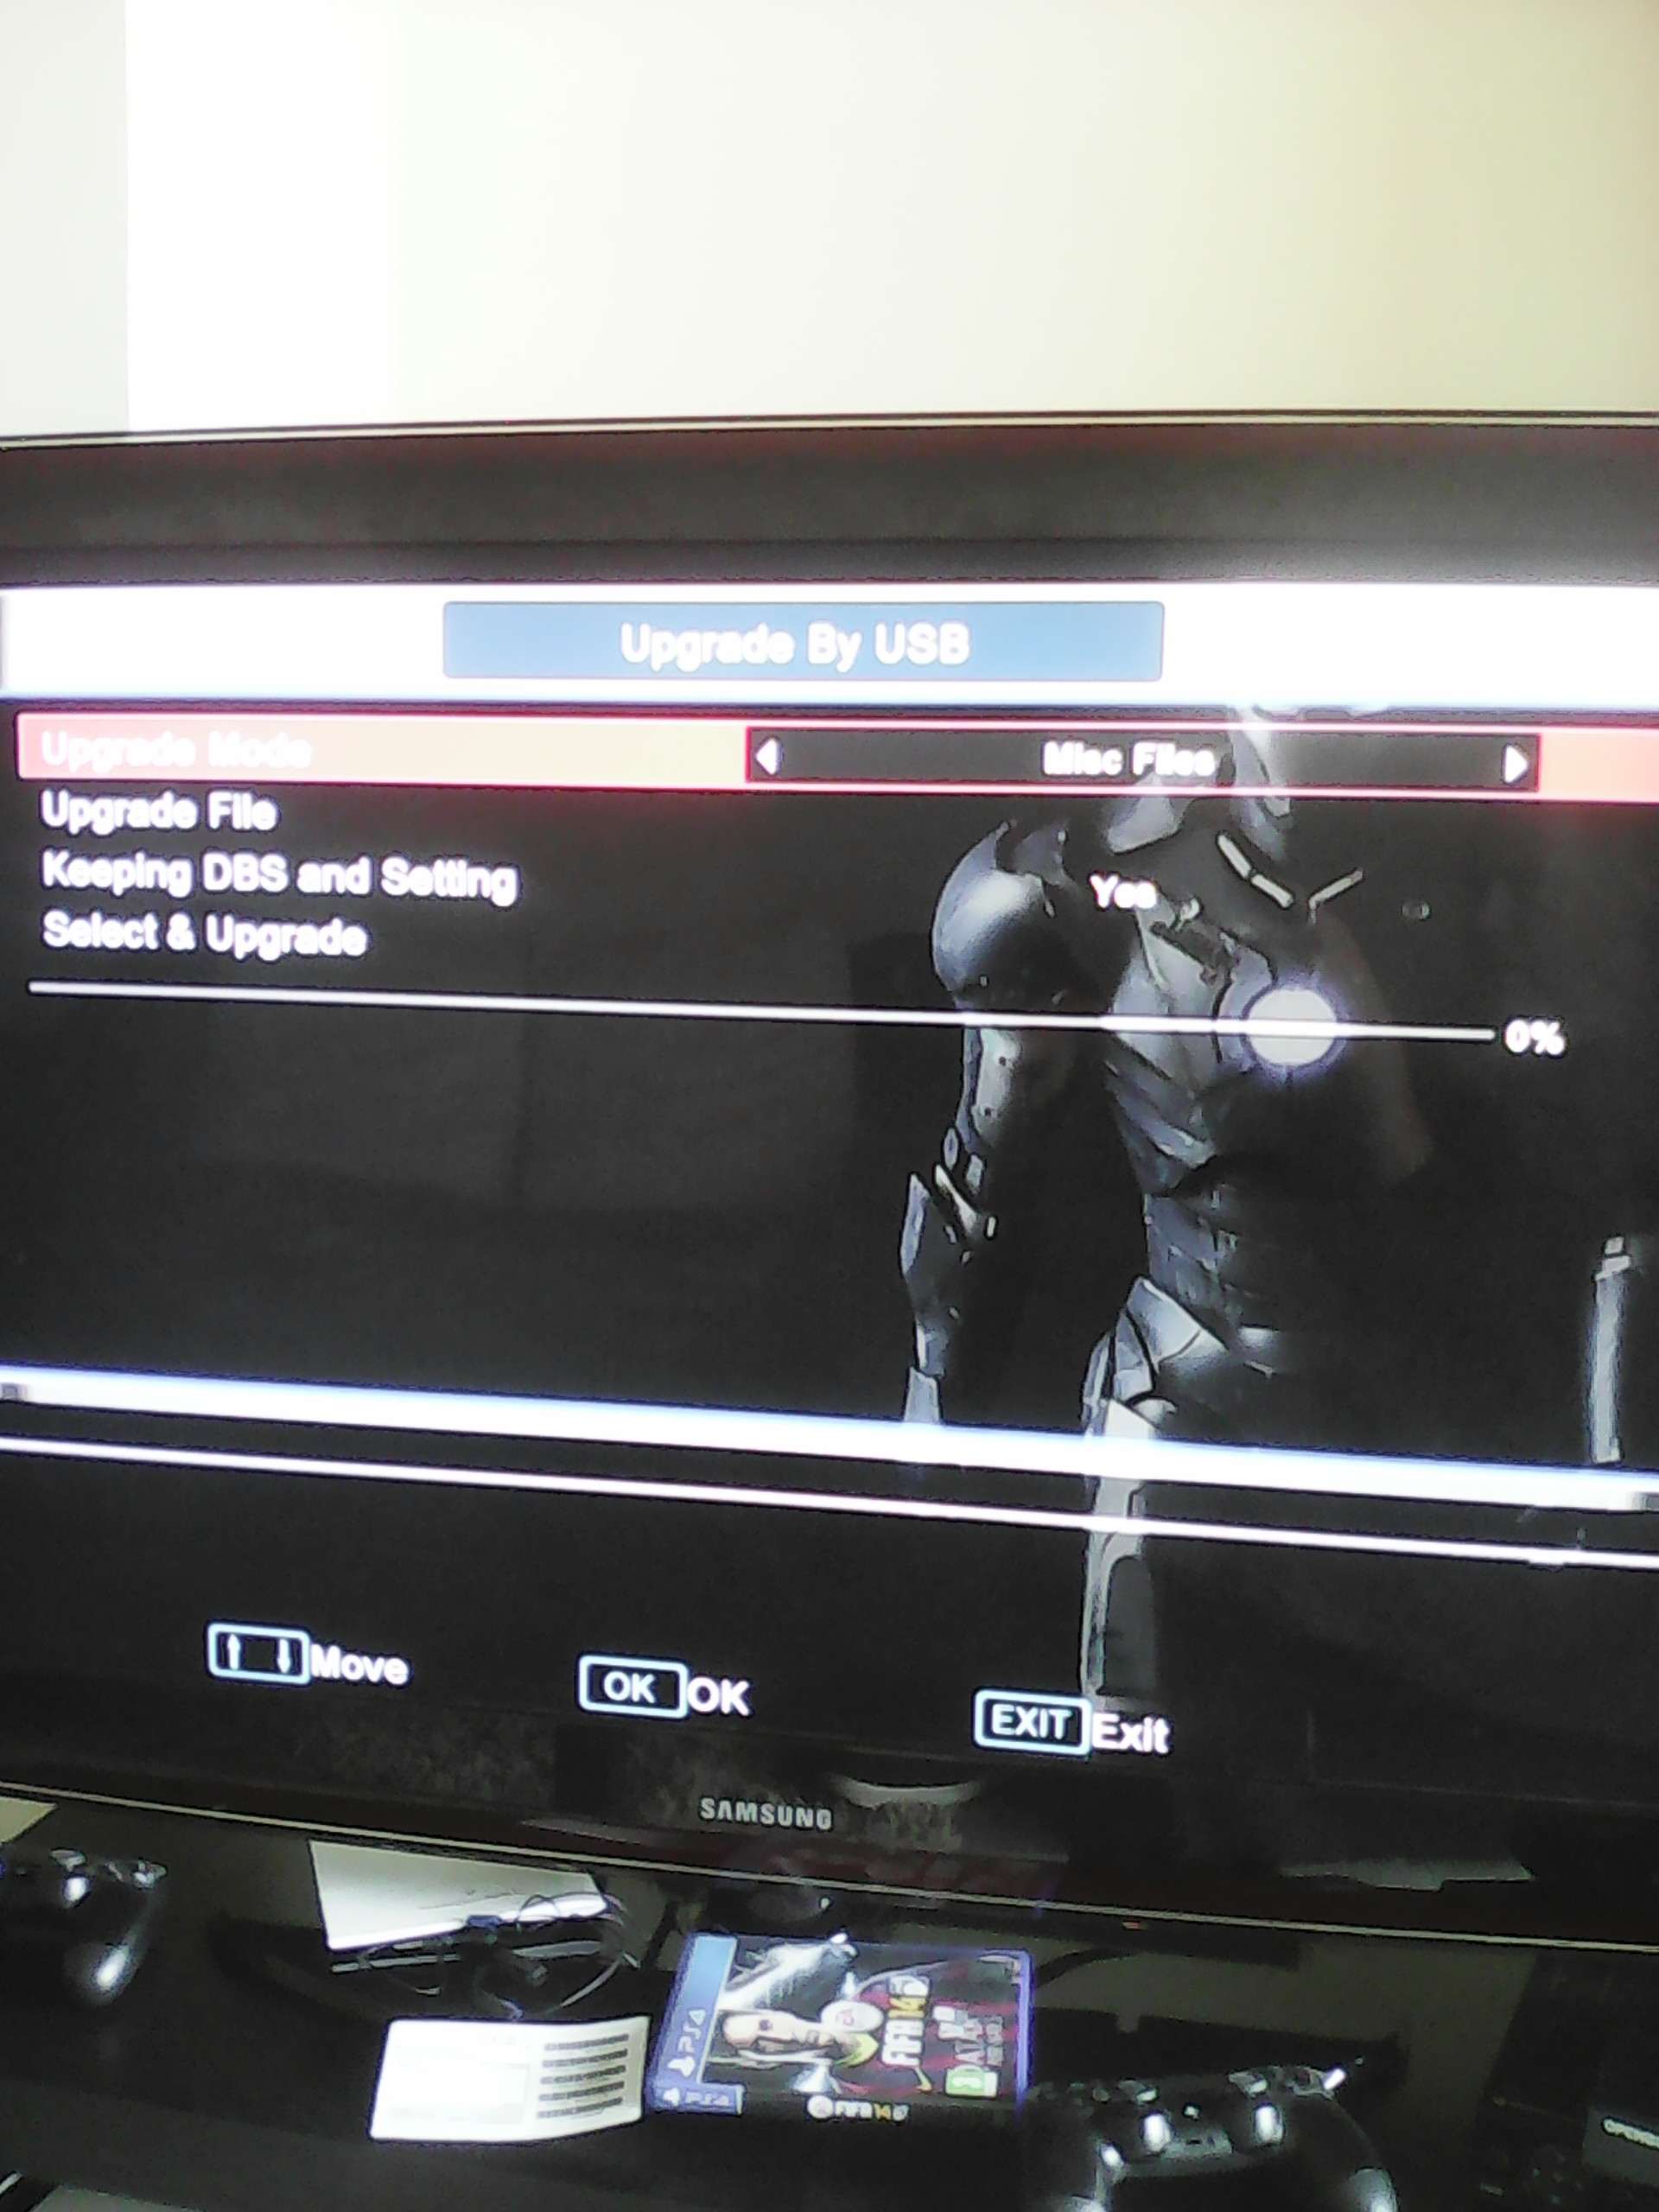 Openbox Channel list Upgrade by USB   My Free TV Box